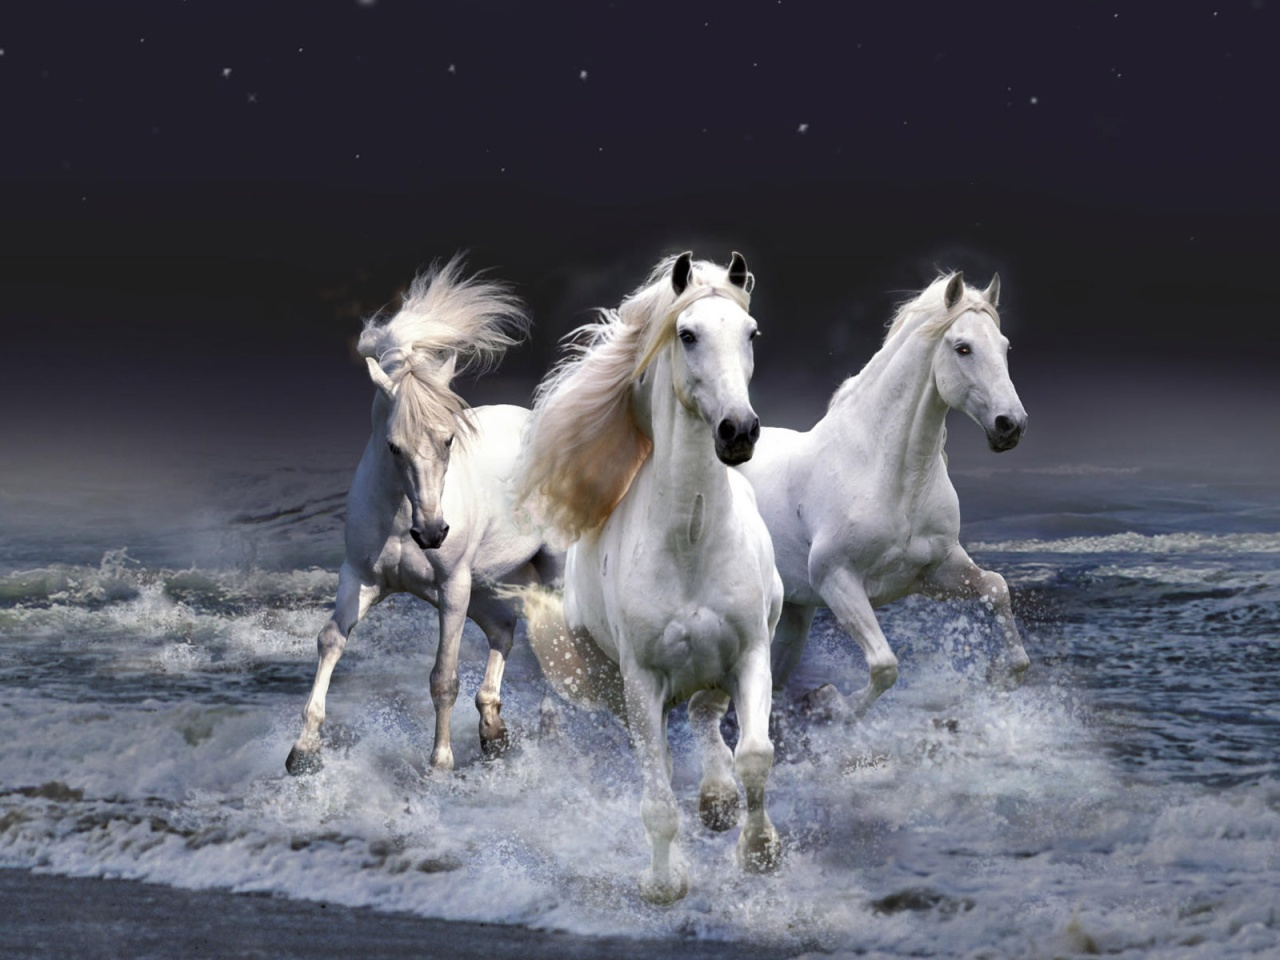 Its A Beautiful White Horse Painting Where The Color Combination